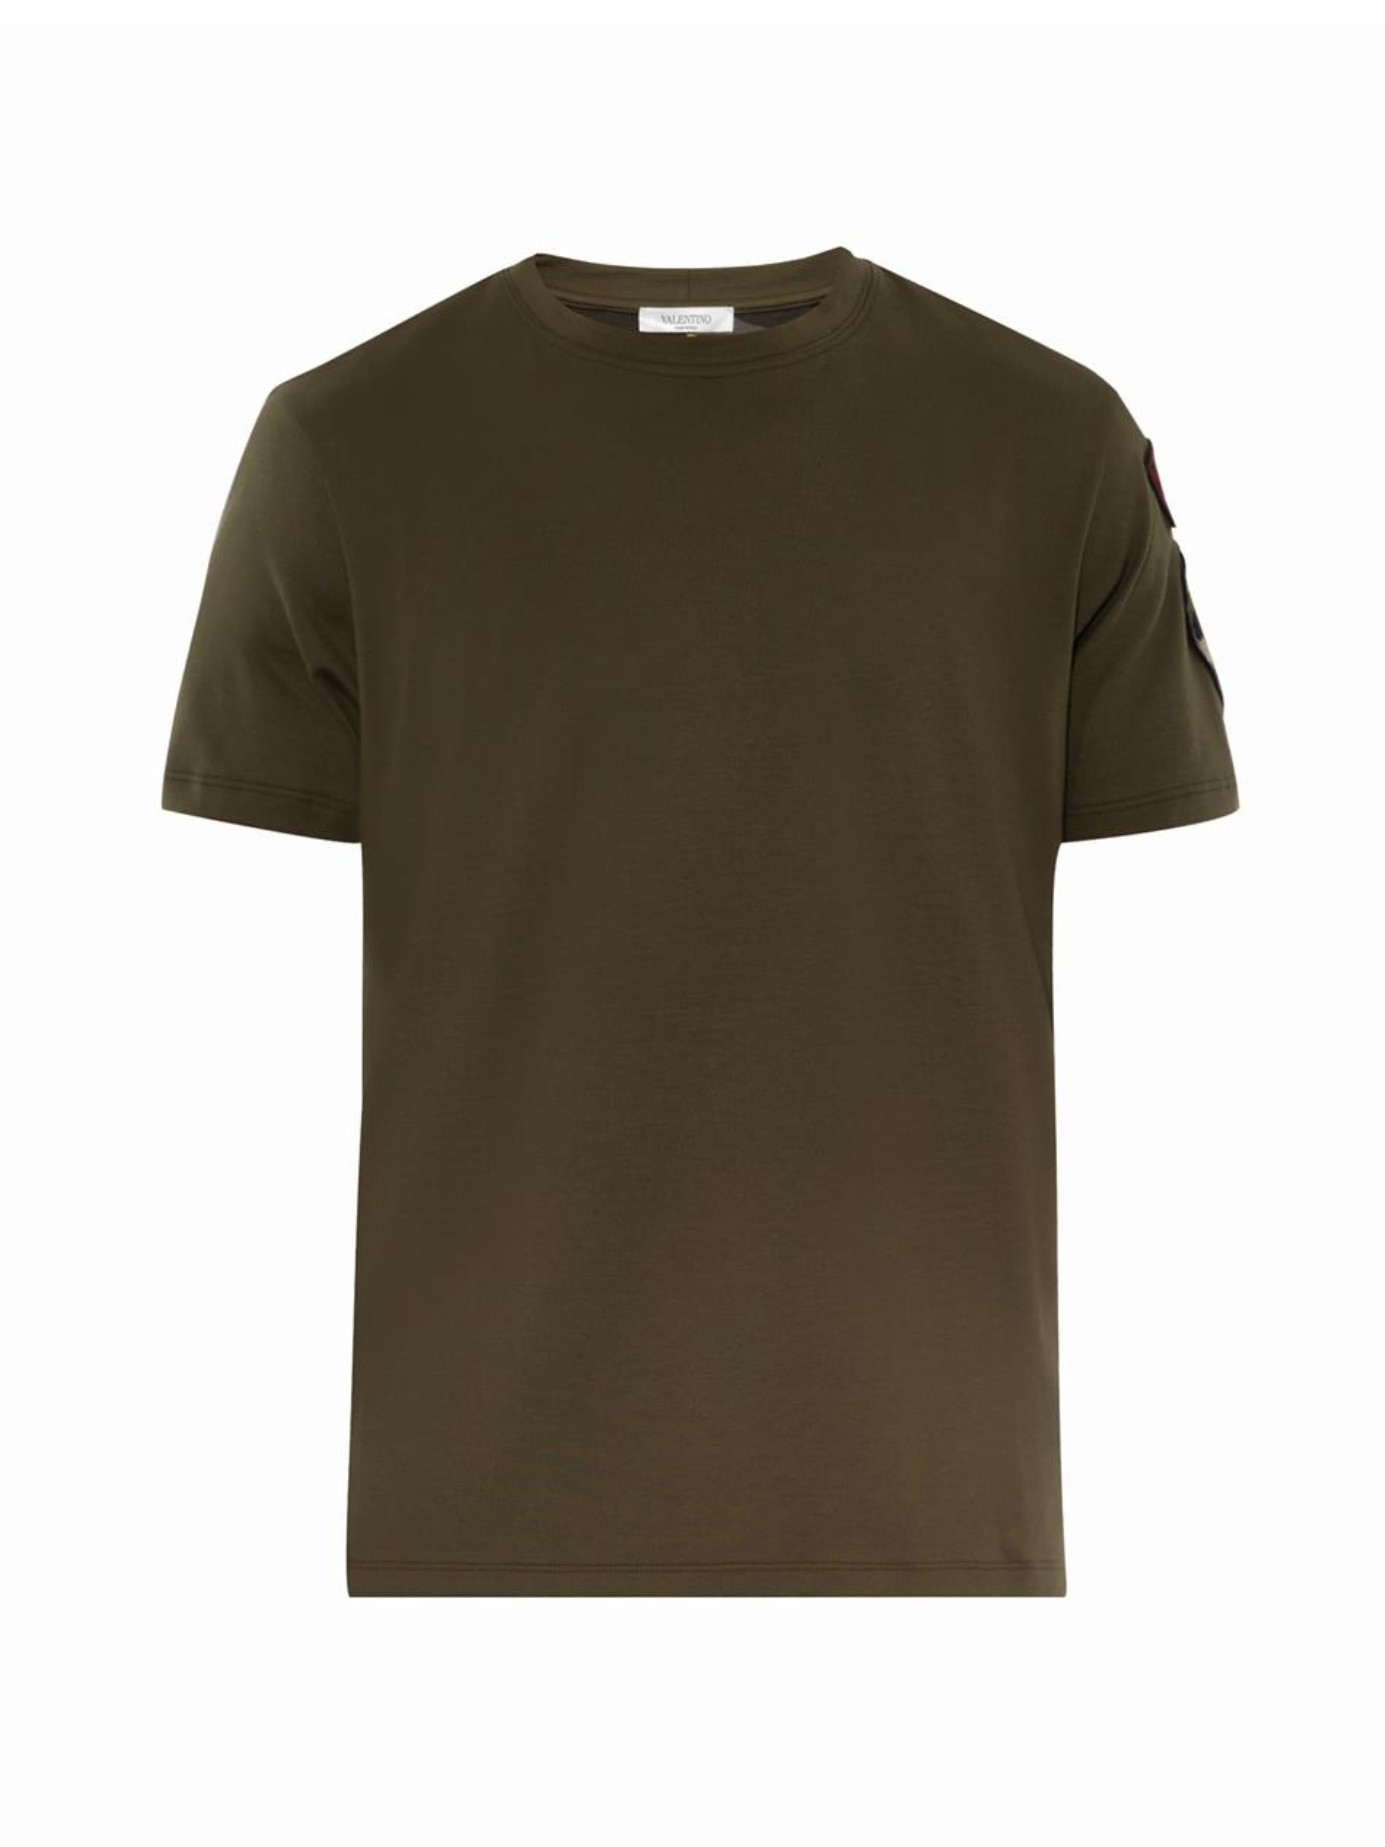 Valentino Embroidered-Patch Army T-Shirt in Green for Men | Lyst